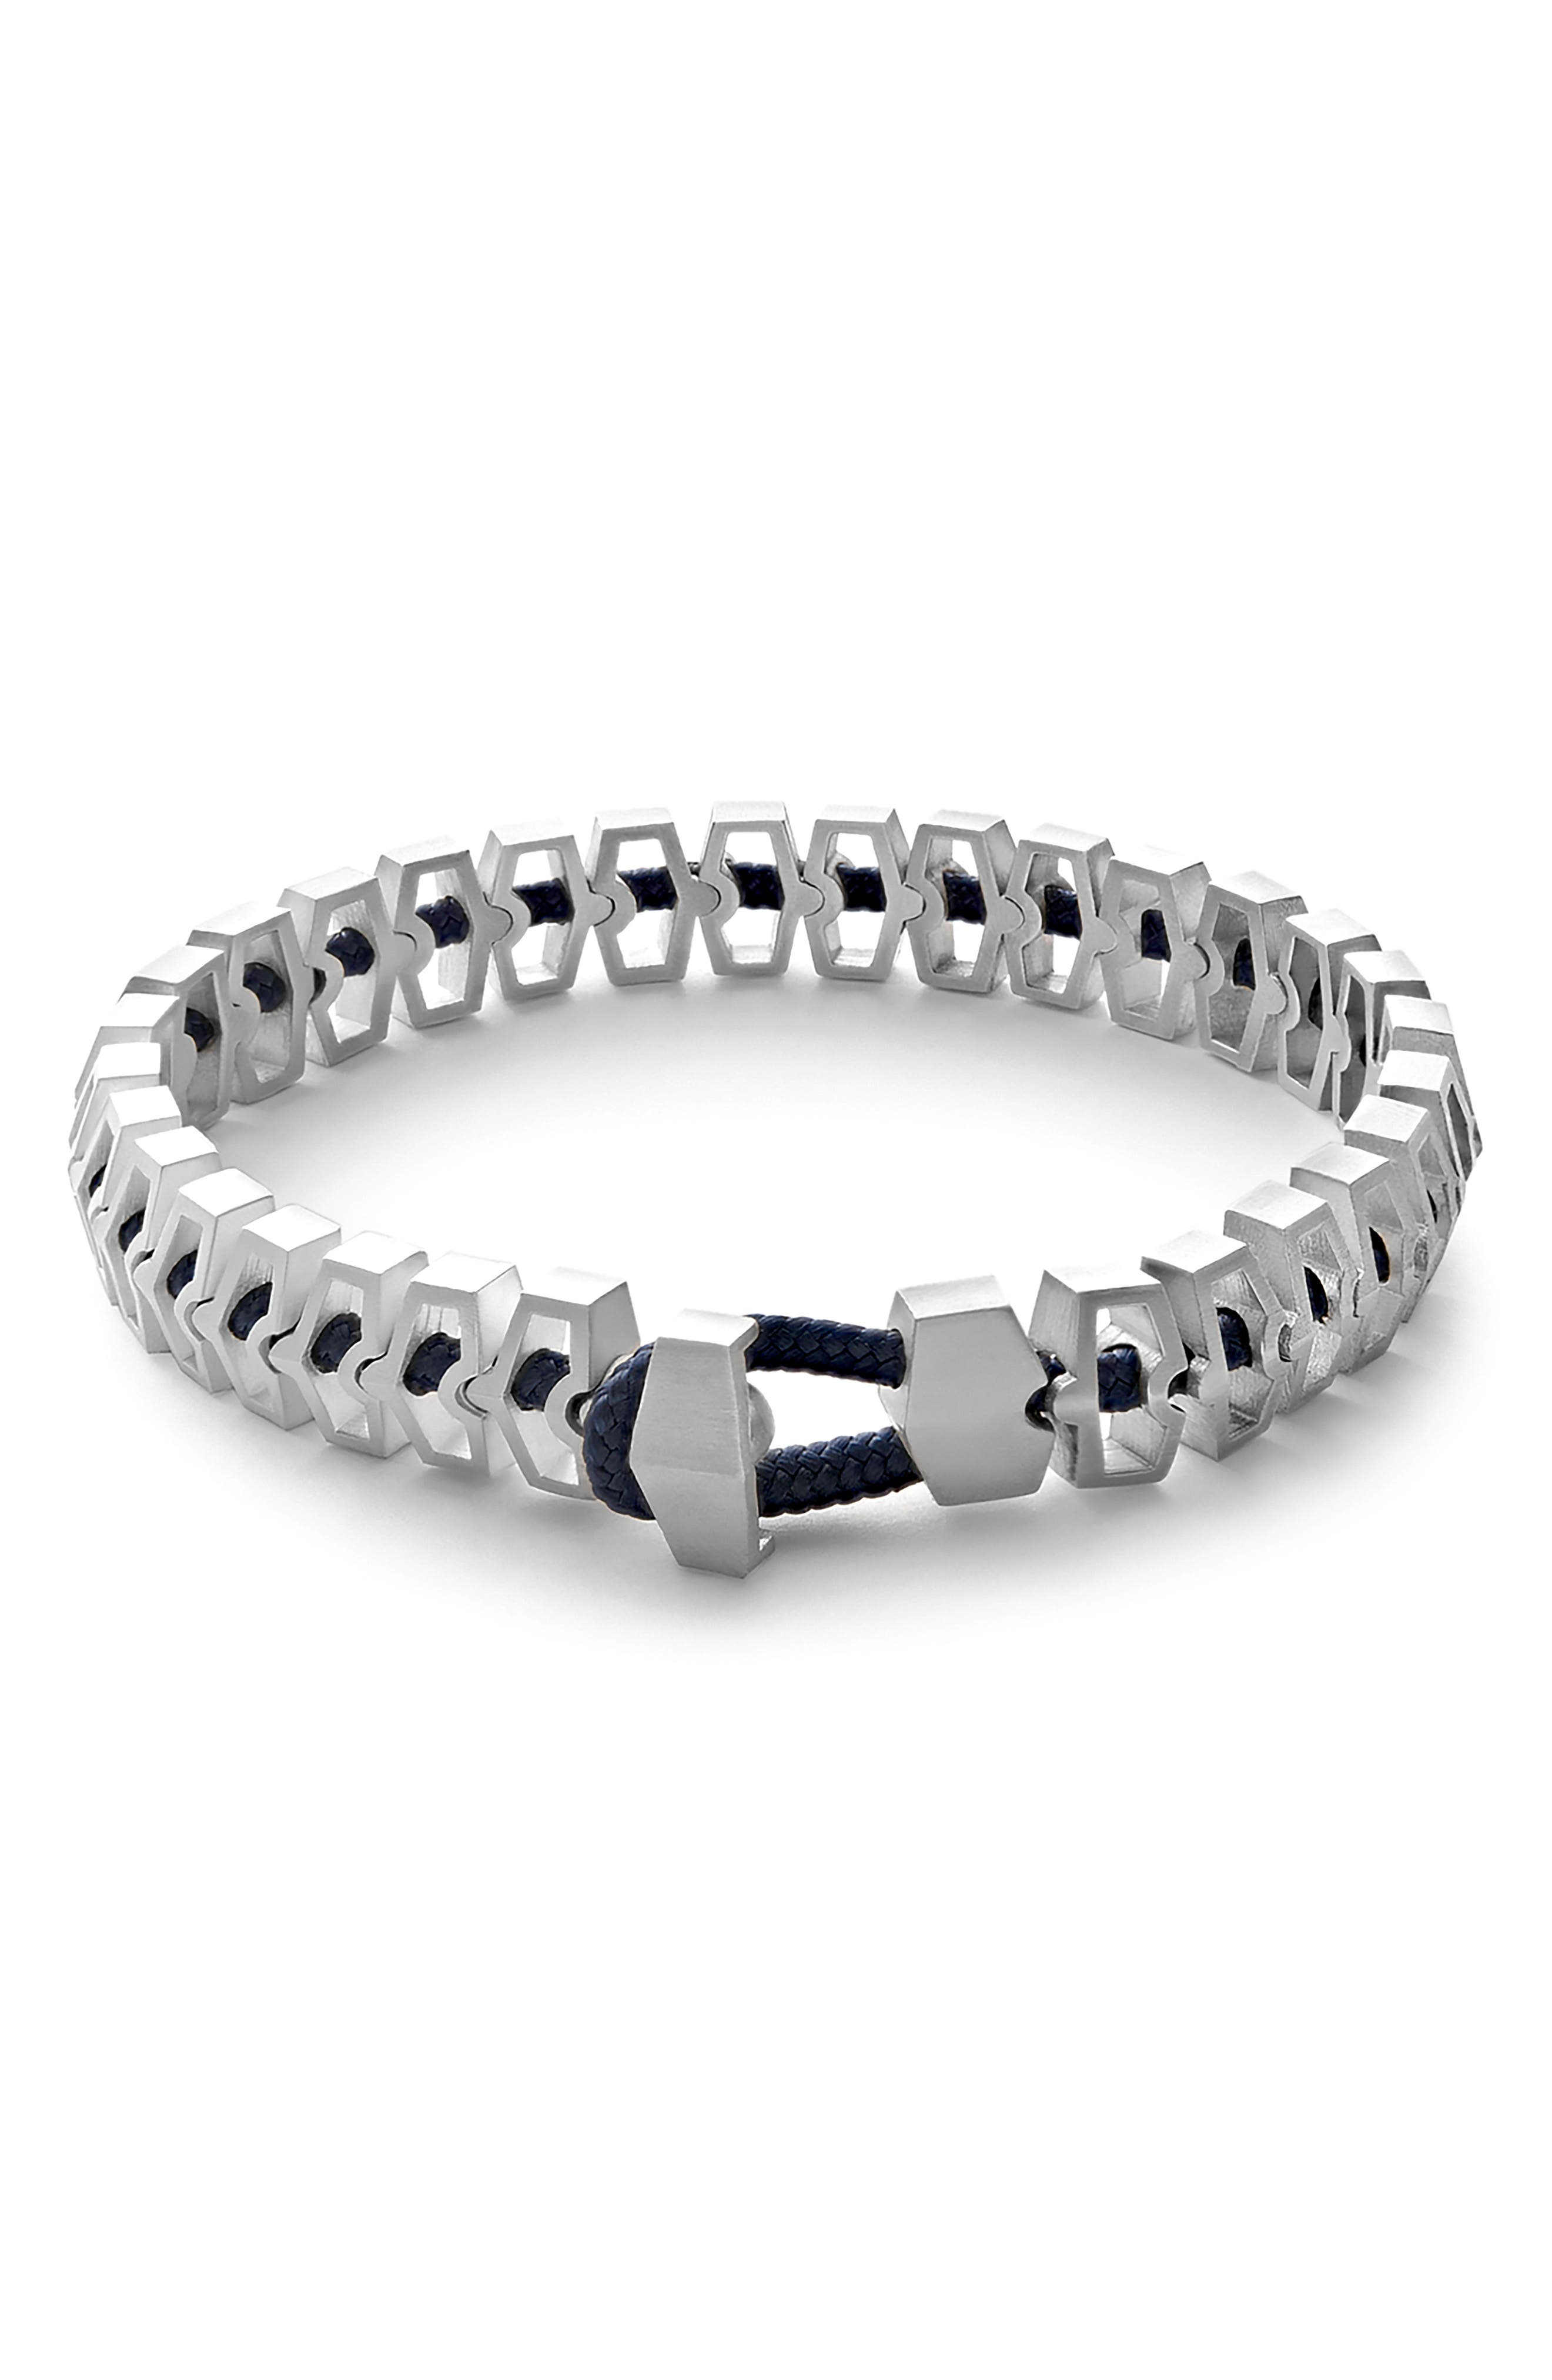 Harbour Bracelet,                             Main thumbnail 1, color,                             Silver/ Navy